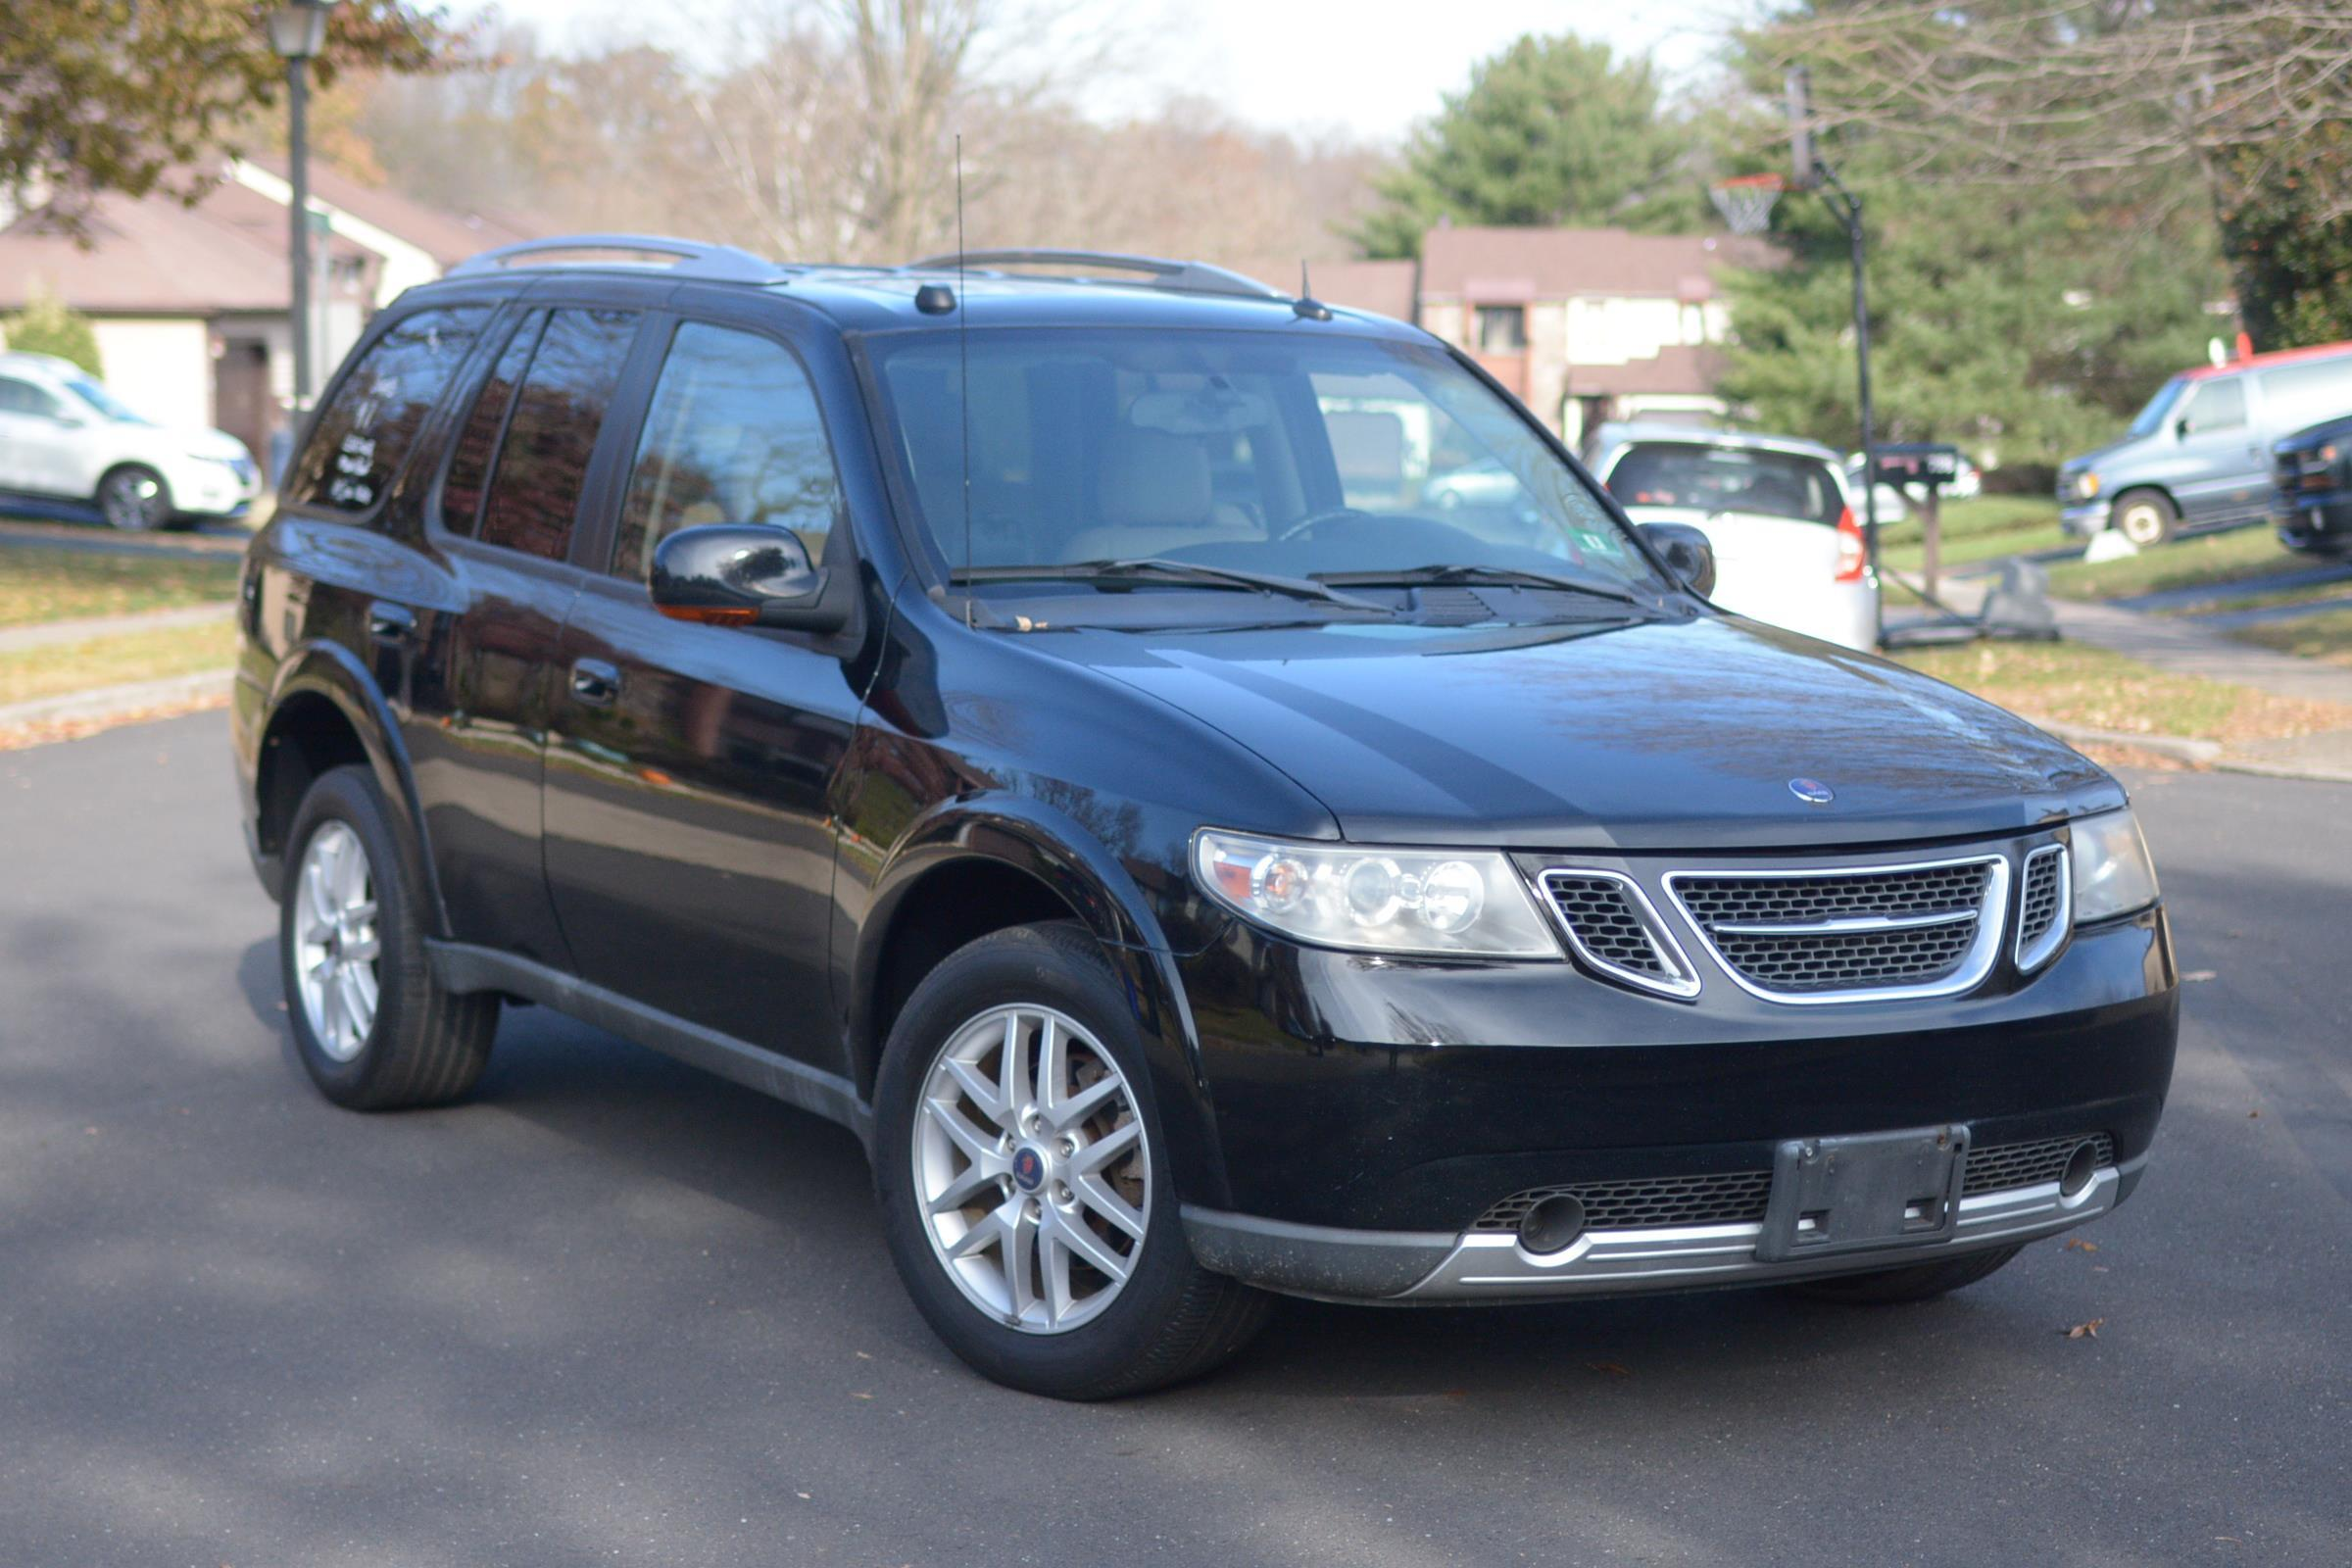 2005 SAAB 9-7X NICE AND CLEAN, LEATHER , ROOF , CLEAN CARFAX RUNS GOOD